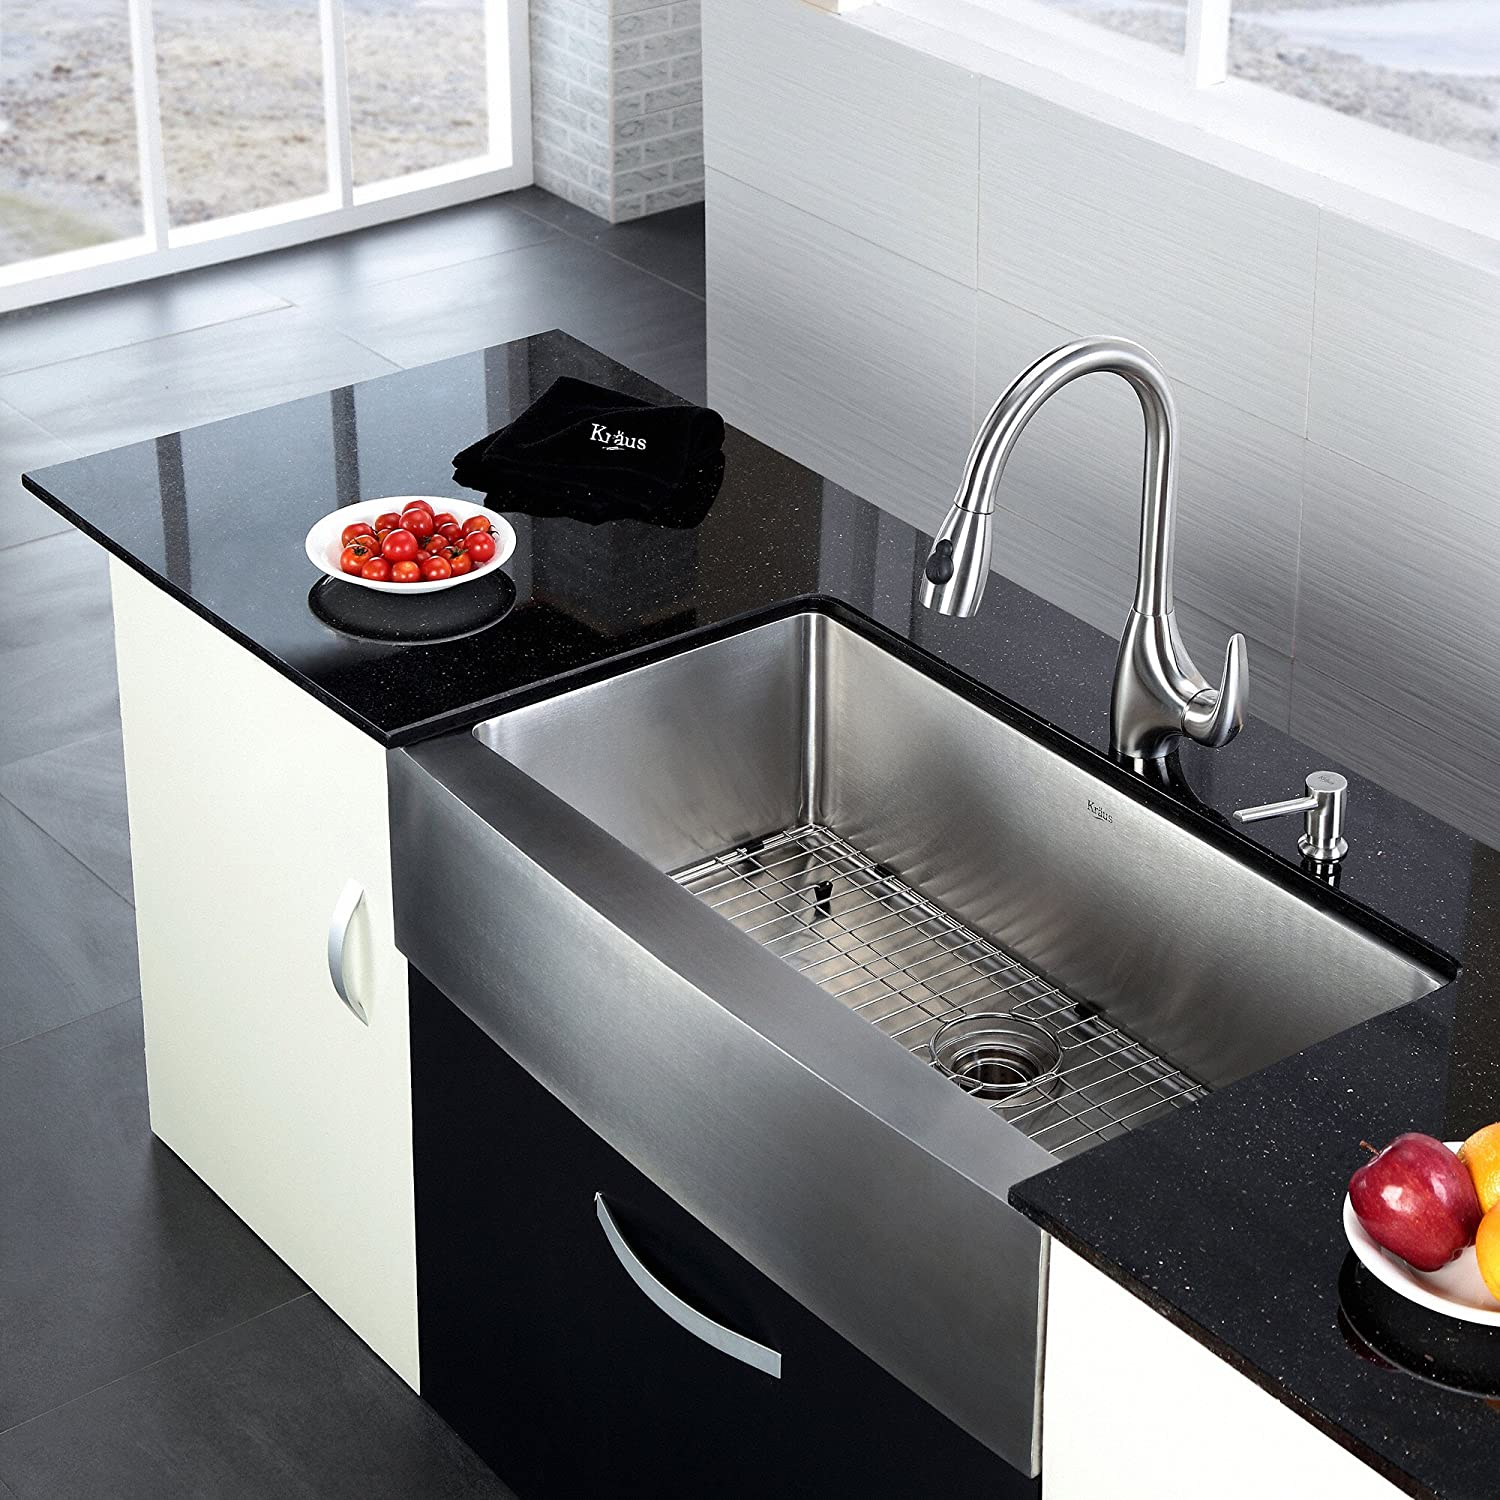 blanco graph inspirational sink lovely full of kitchen new fresh best sinks silgranit bathroom reviews size